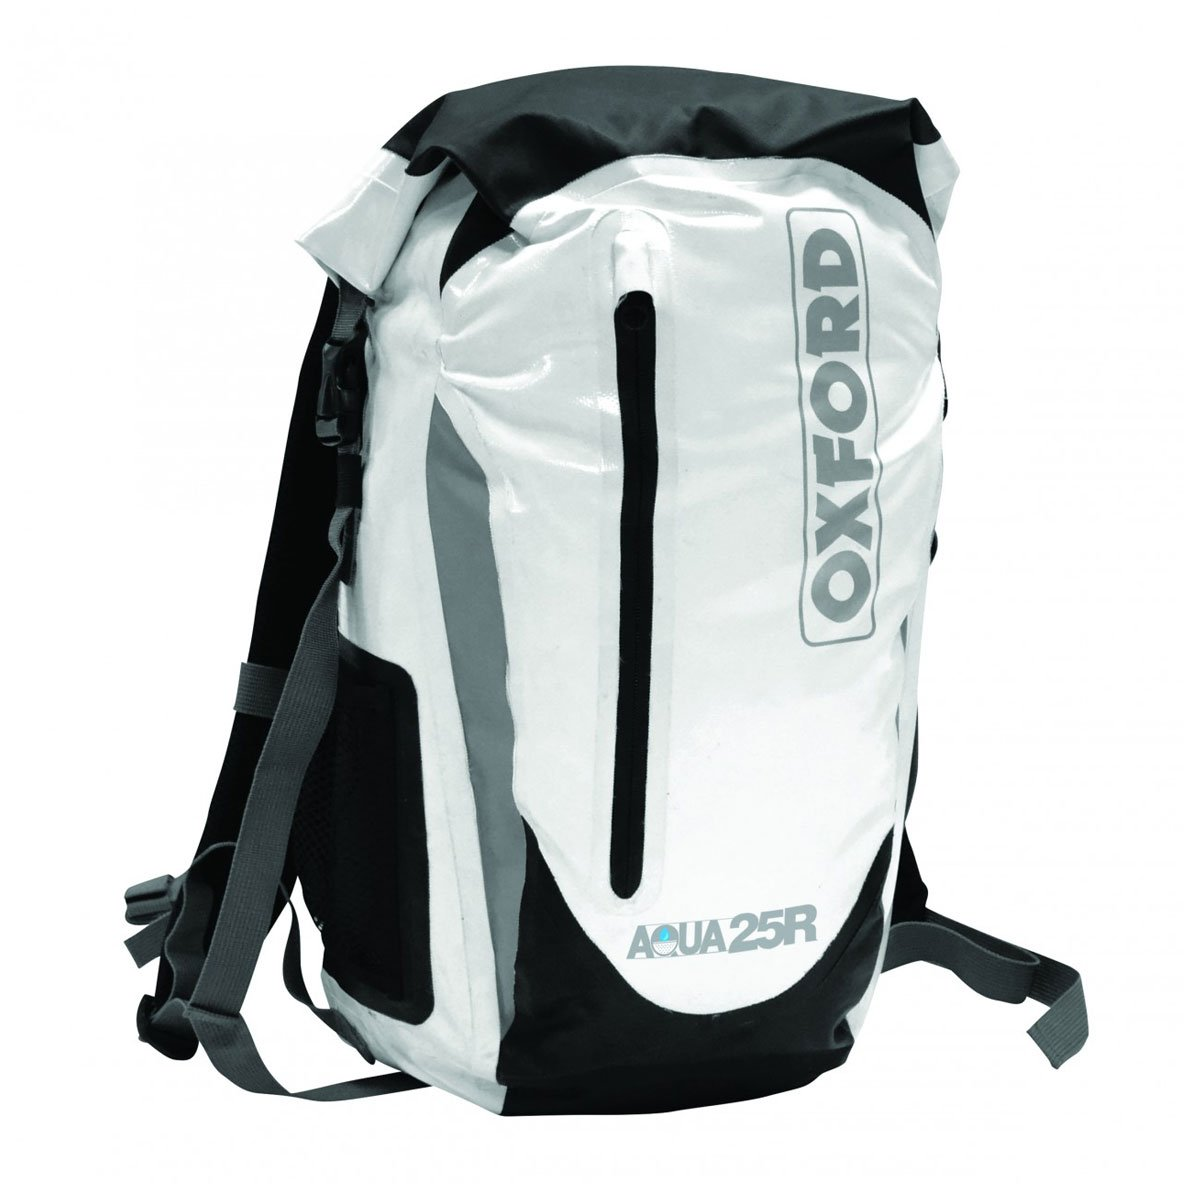 7b78b420d7 Oxford Motorcycle Aqua 25 Rucksack All Weather Waterproof Back Pack OL931   Amazon.co.uk  Sports   Outdoors